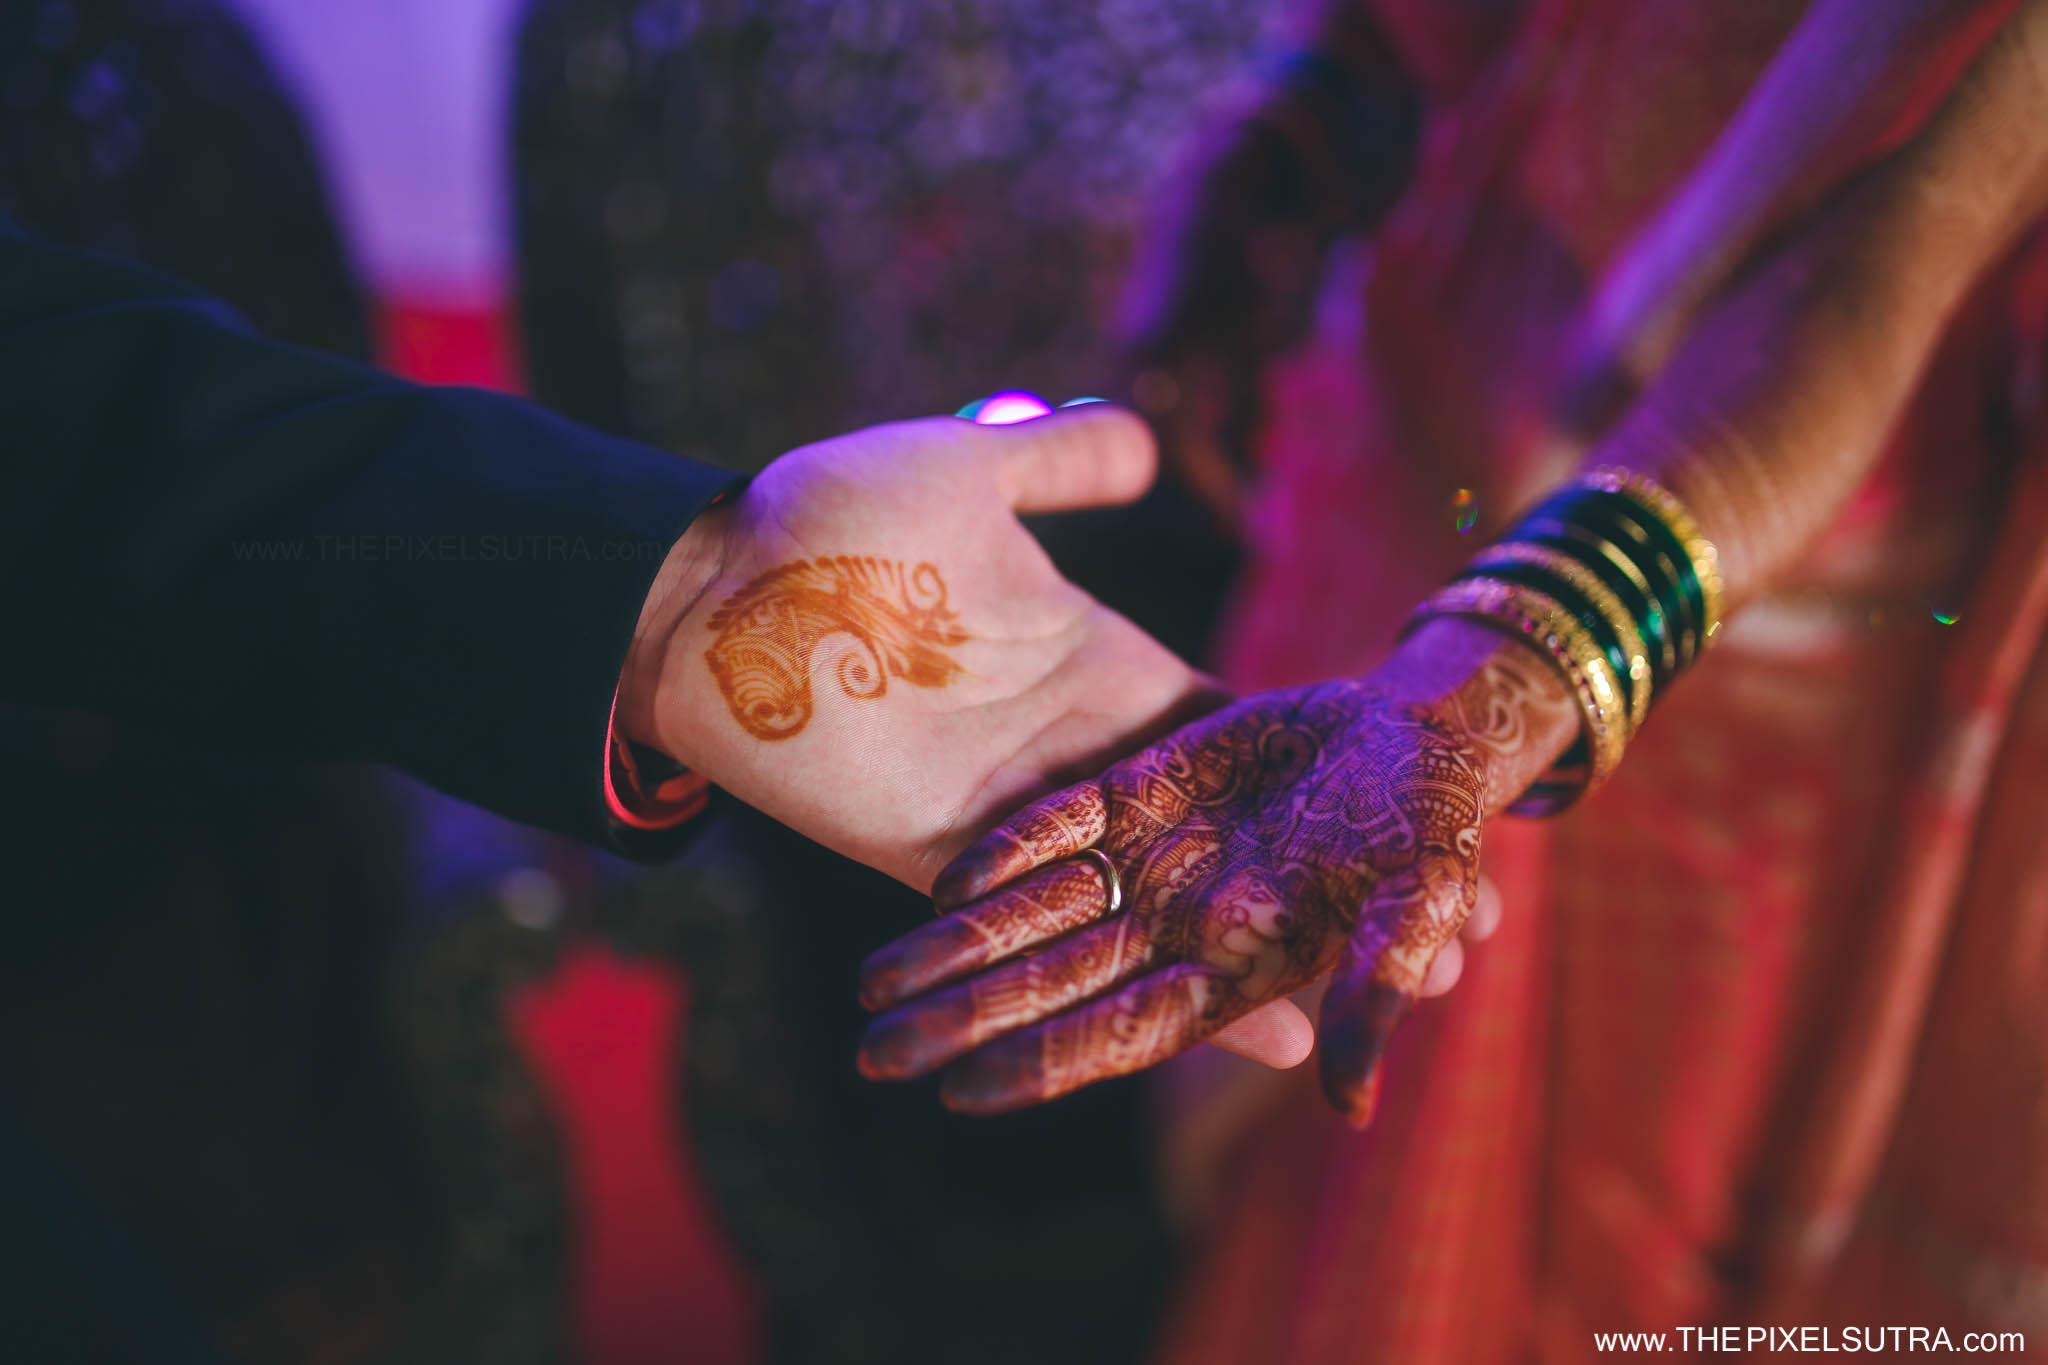 The Pixel Sutra Nachiket x Priyanka Candid Wedding photographer Mumbai Best  (57).jpg